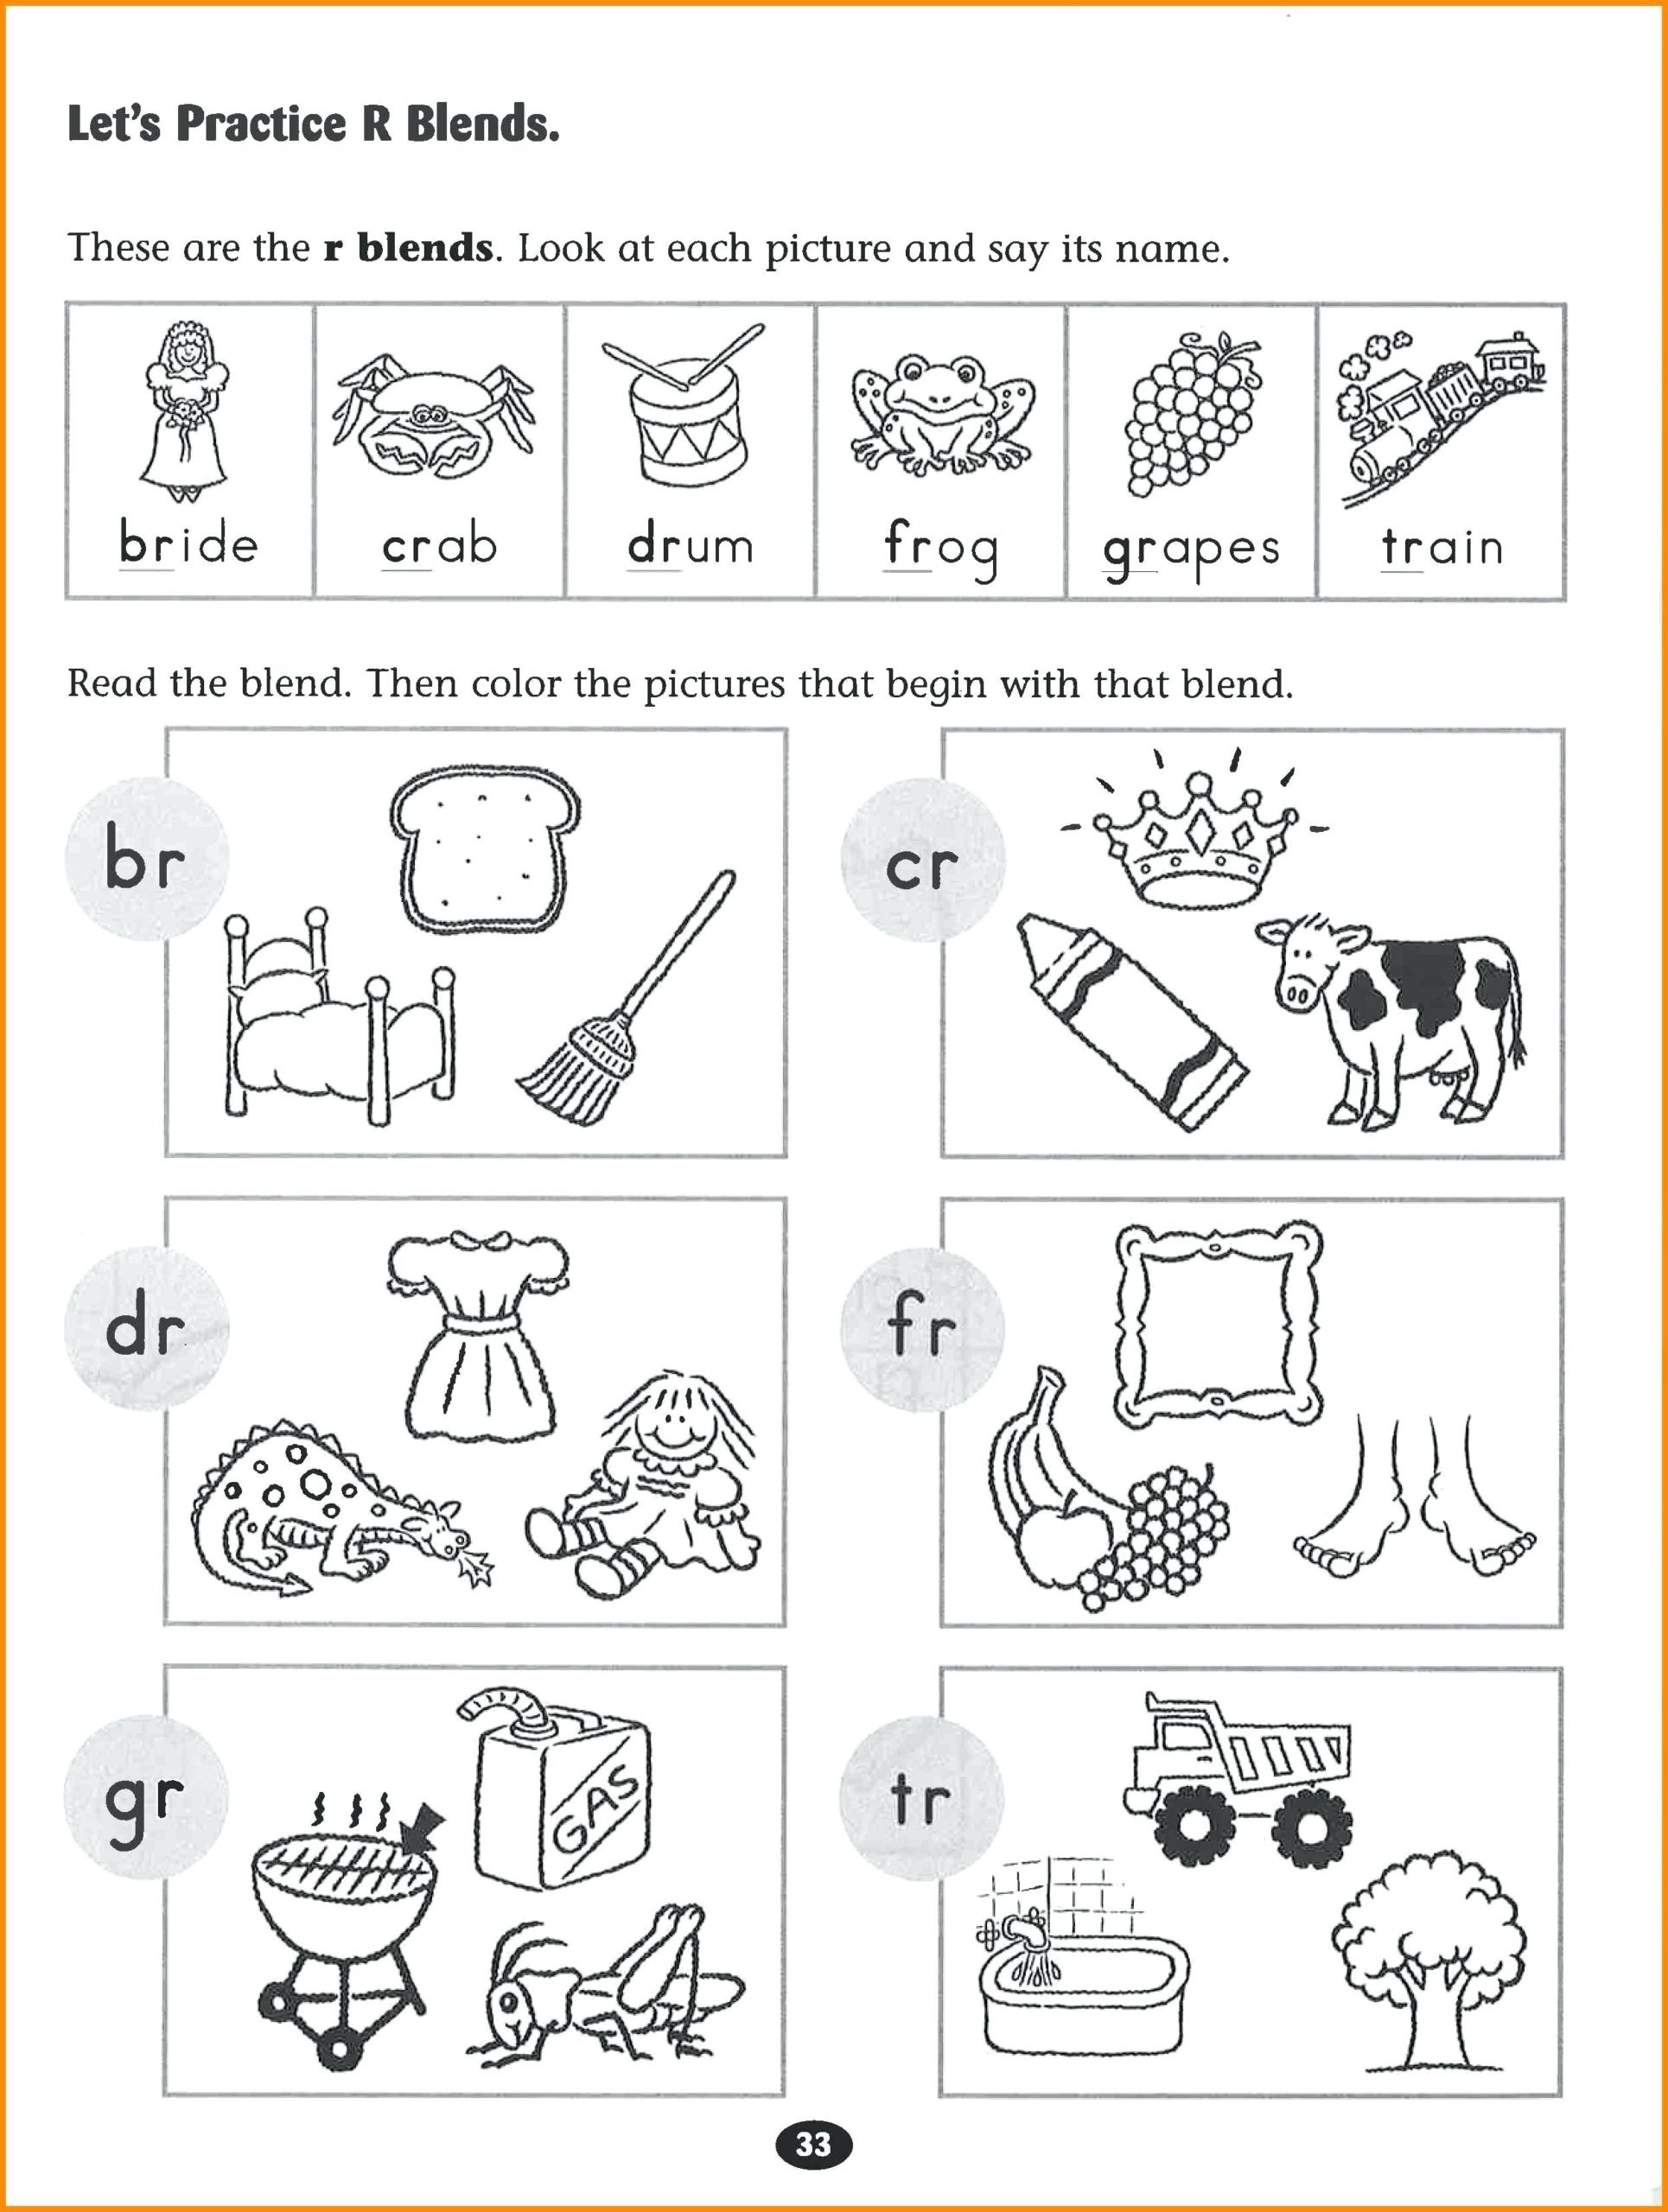 Blends Worksheets for 1st Grade Worksheet Thanksgiving School Projects Xmas Party Games